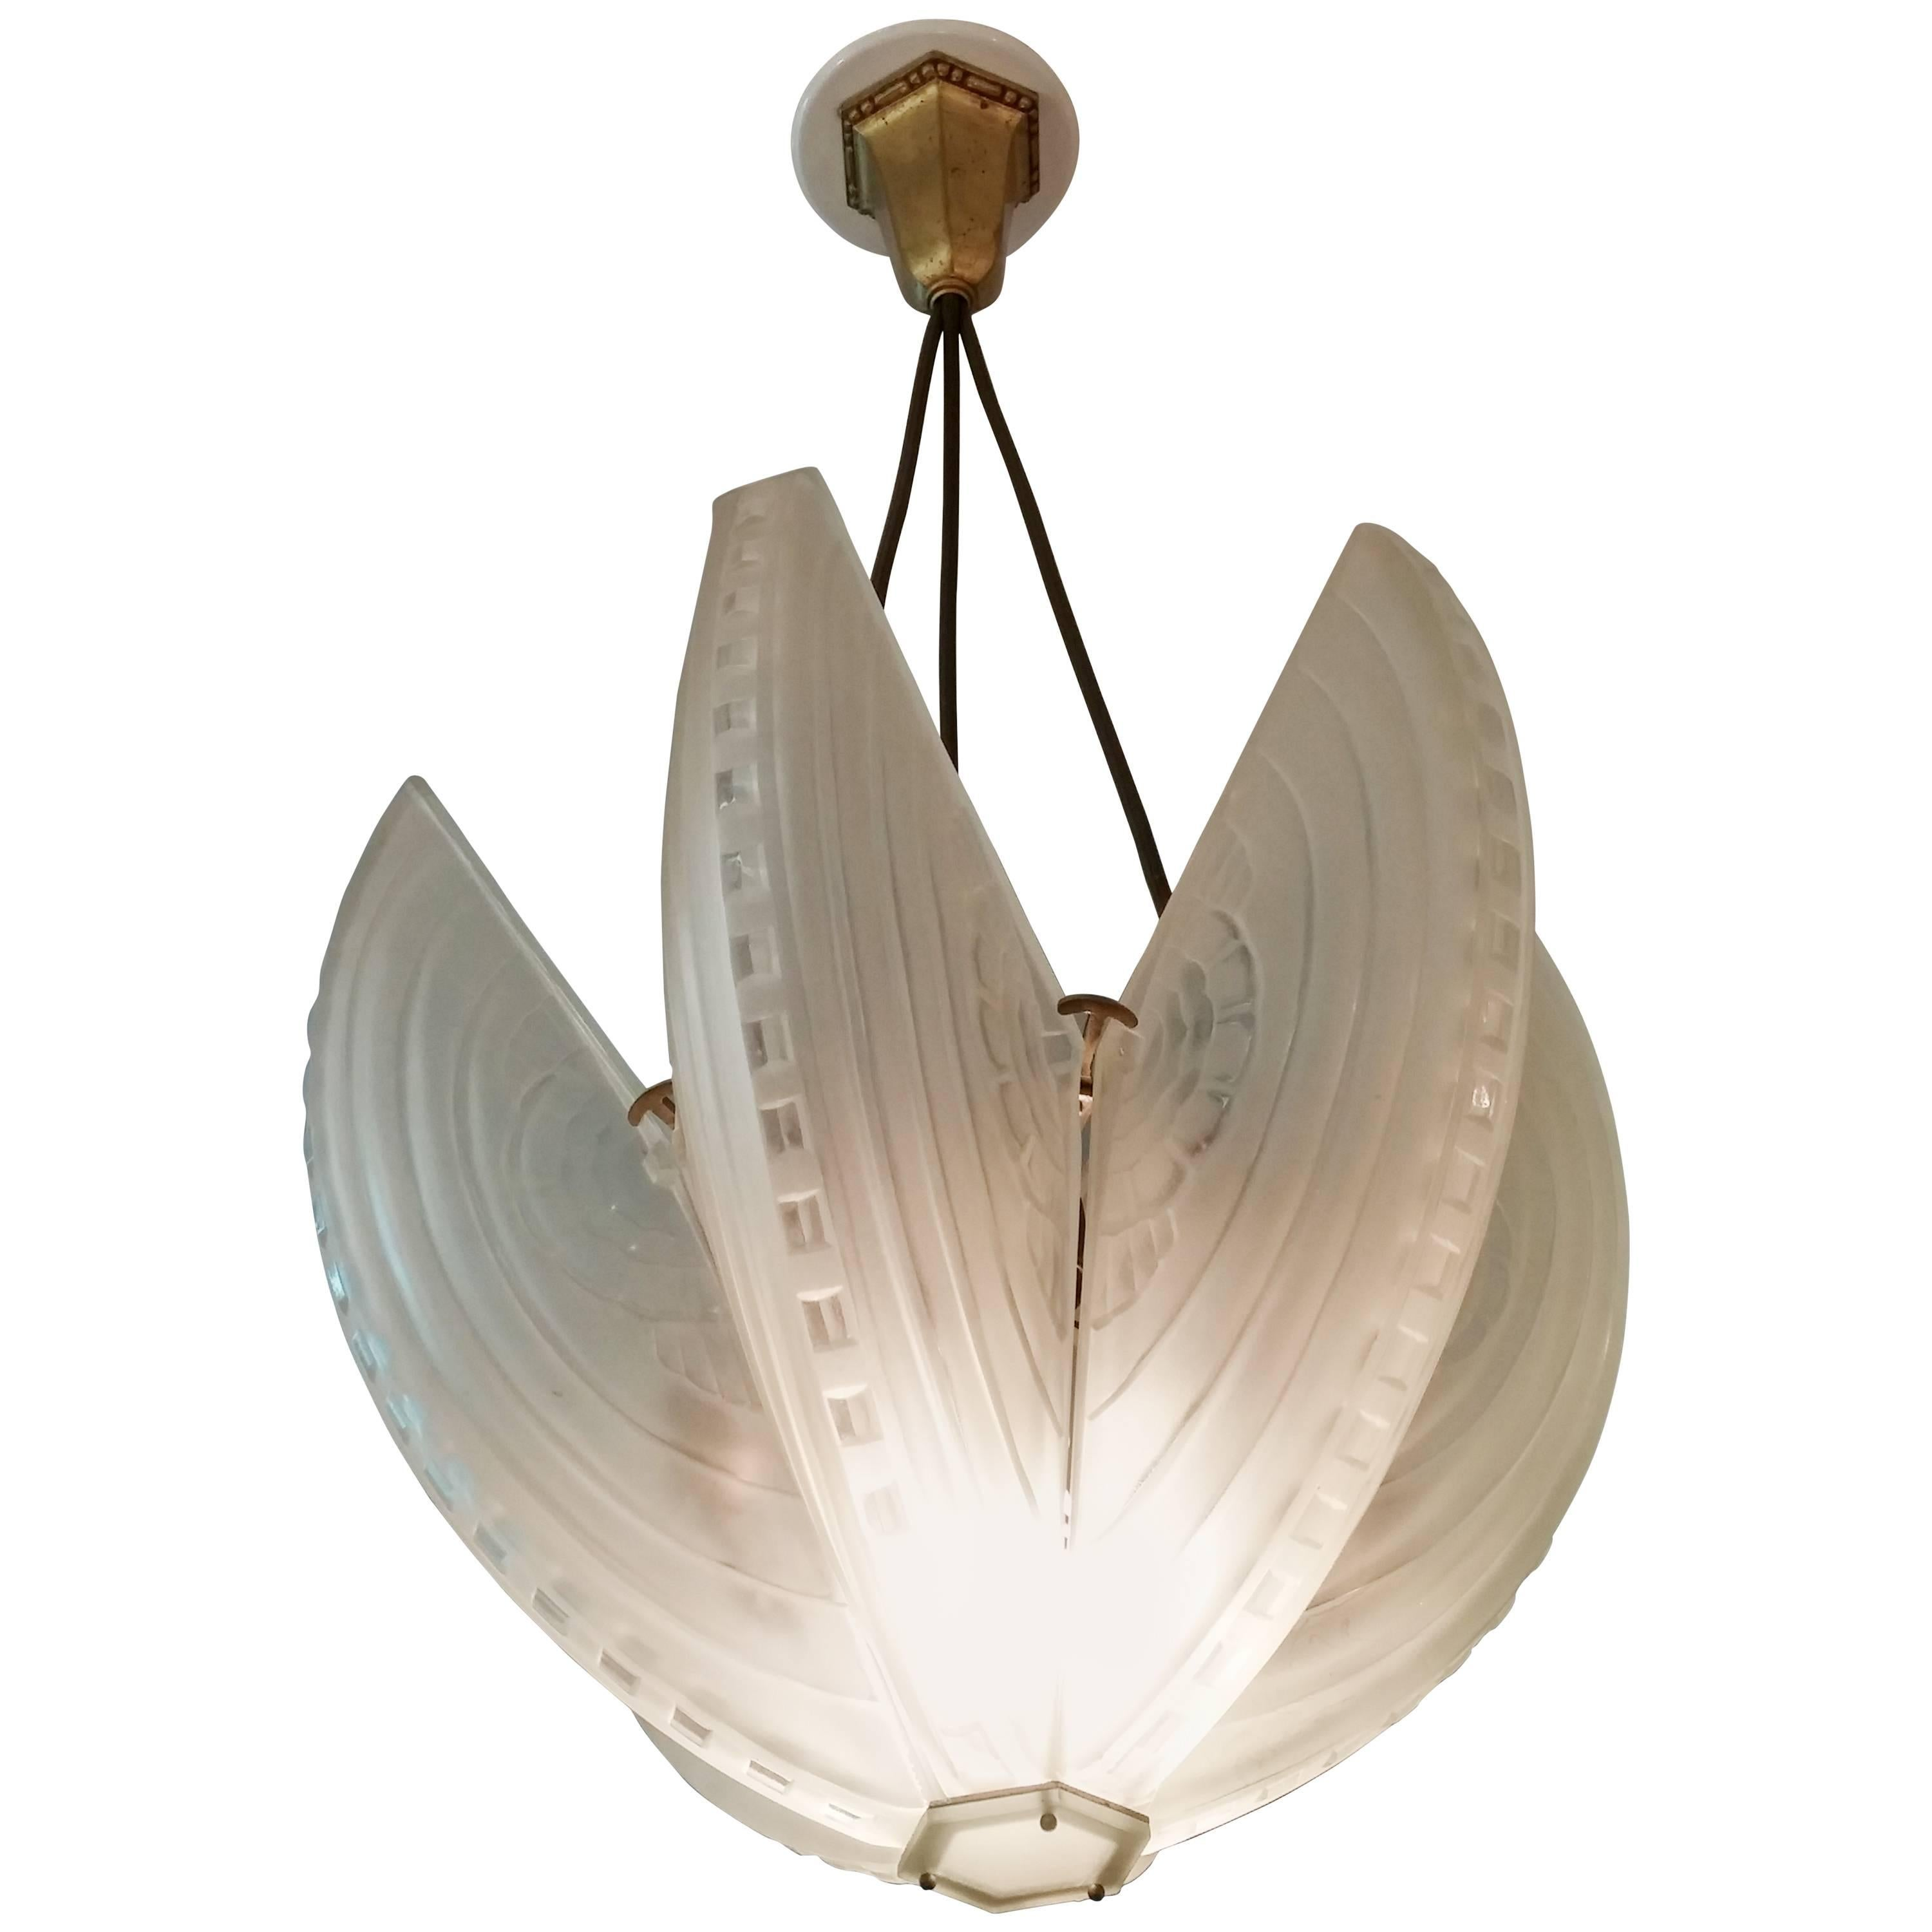 French Art Deco Chandelier or Pendant Signed by Sabino